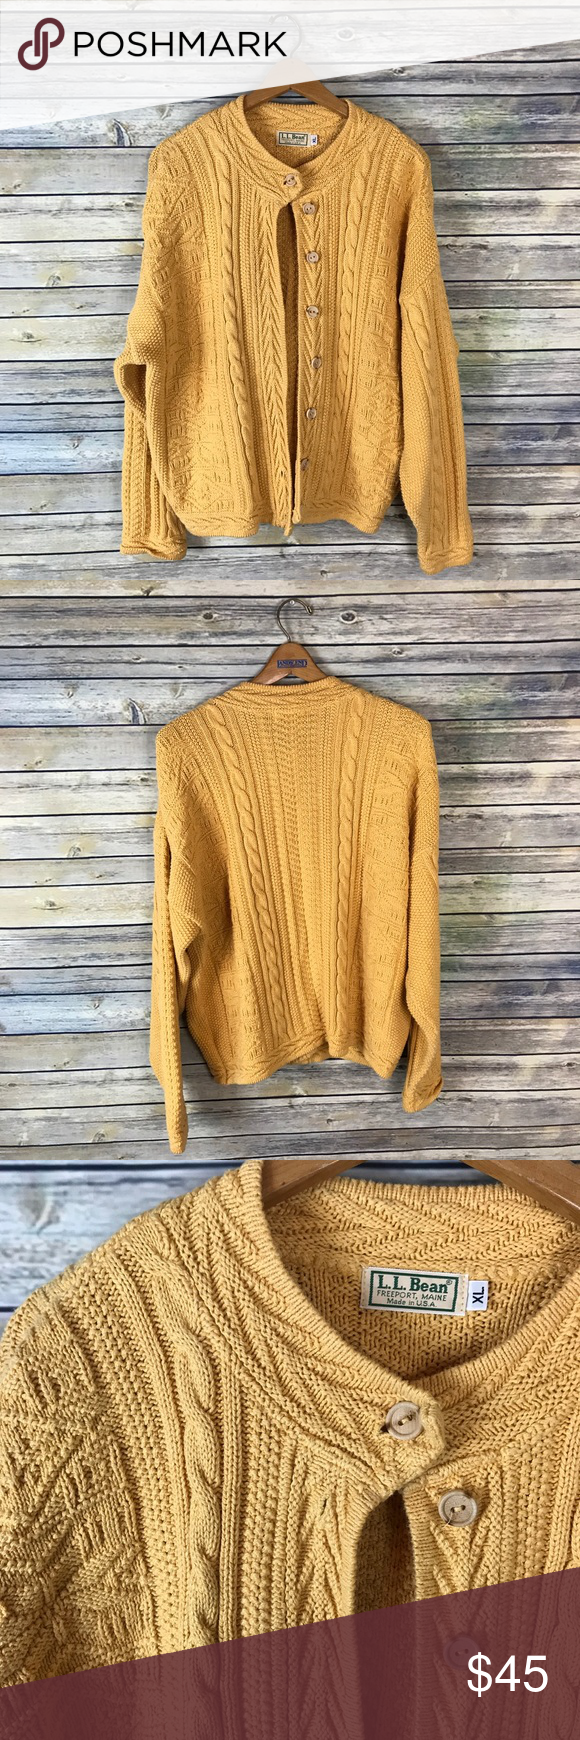 L.L.Bean Vintage Mustard Cable Knit Cardigan Very pretty mustard ...